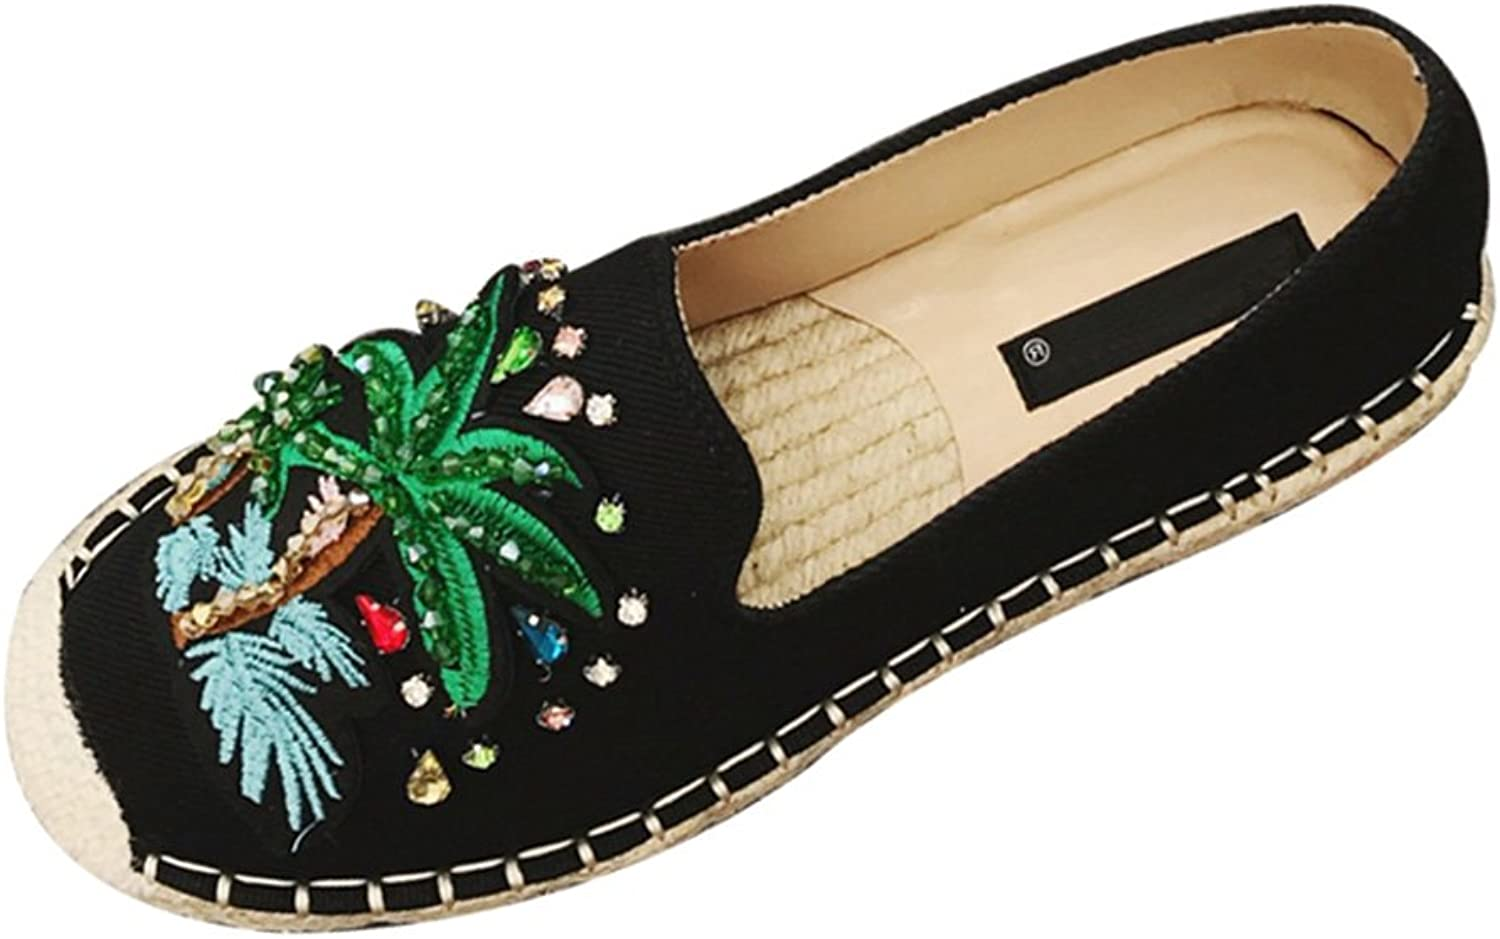 York Zhu Women's Coconut Tree Embroidery Flat shoes, Slip-On Crystal Fisherman Loafers